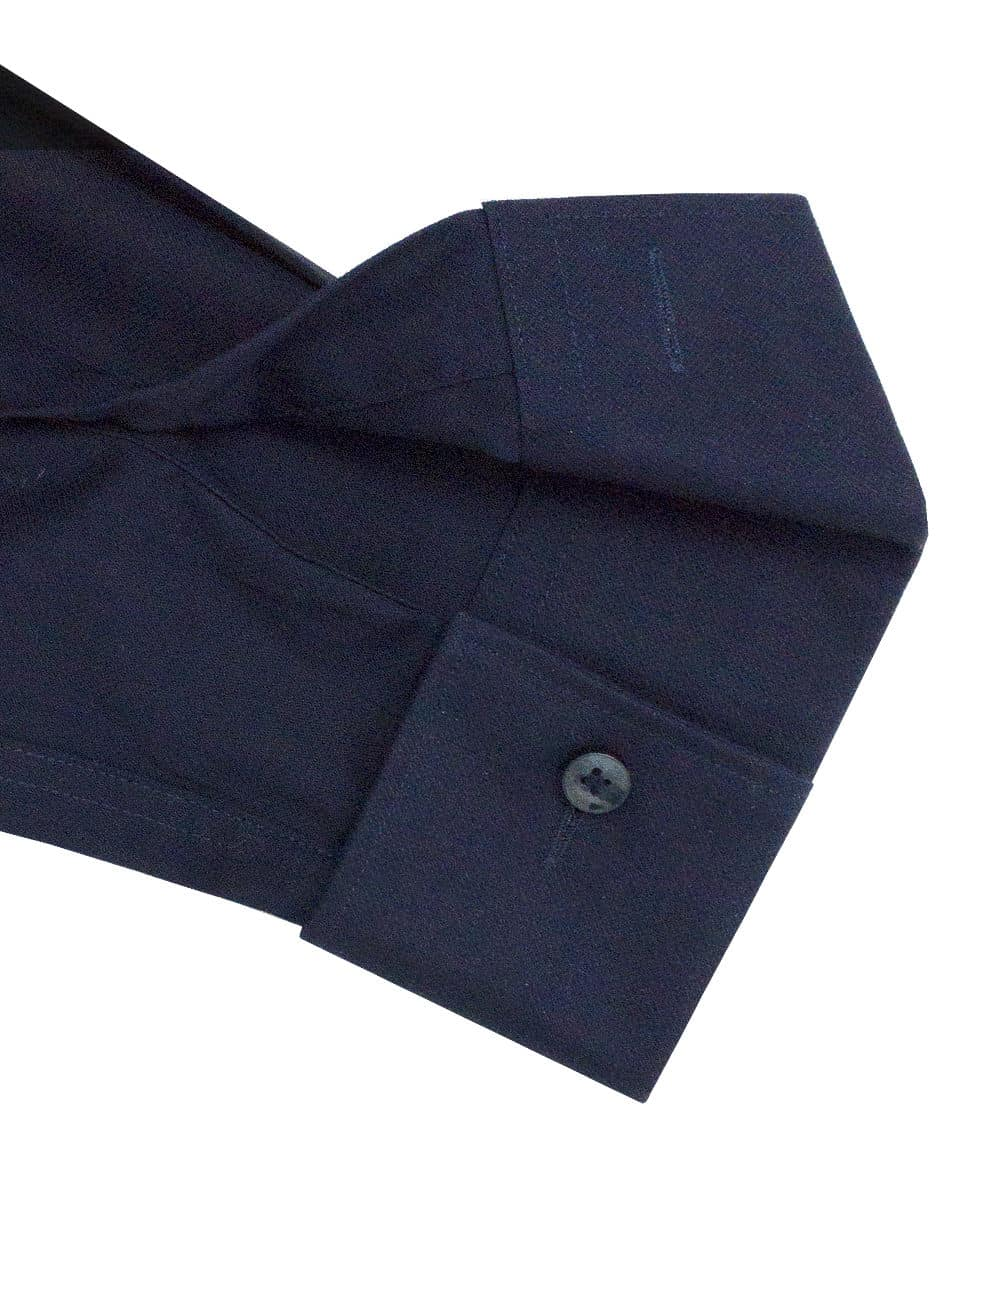 Tailored Fit Solid Navy 100% Premium Cotton Easy Iron Long Sleeve Double Cuff Shirt TF3D3.16